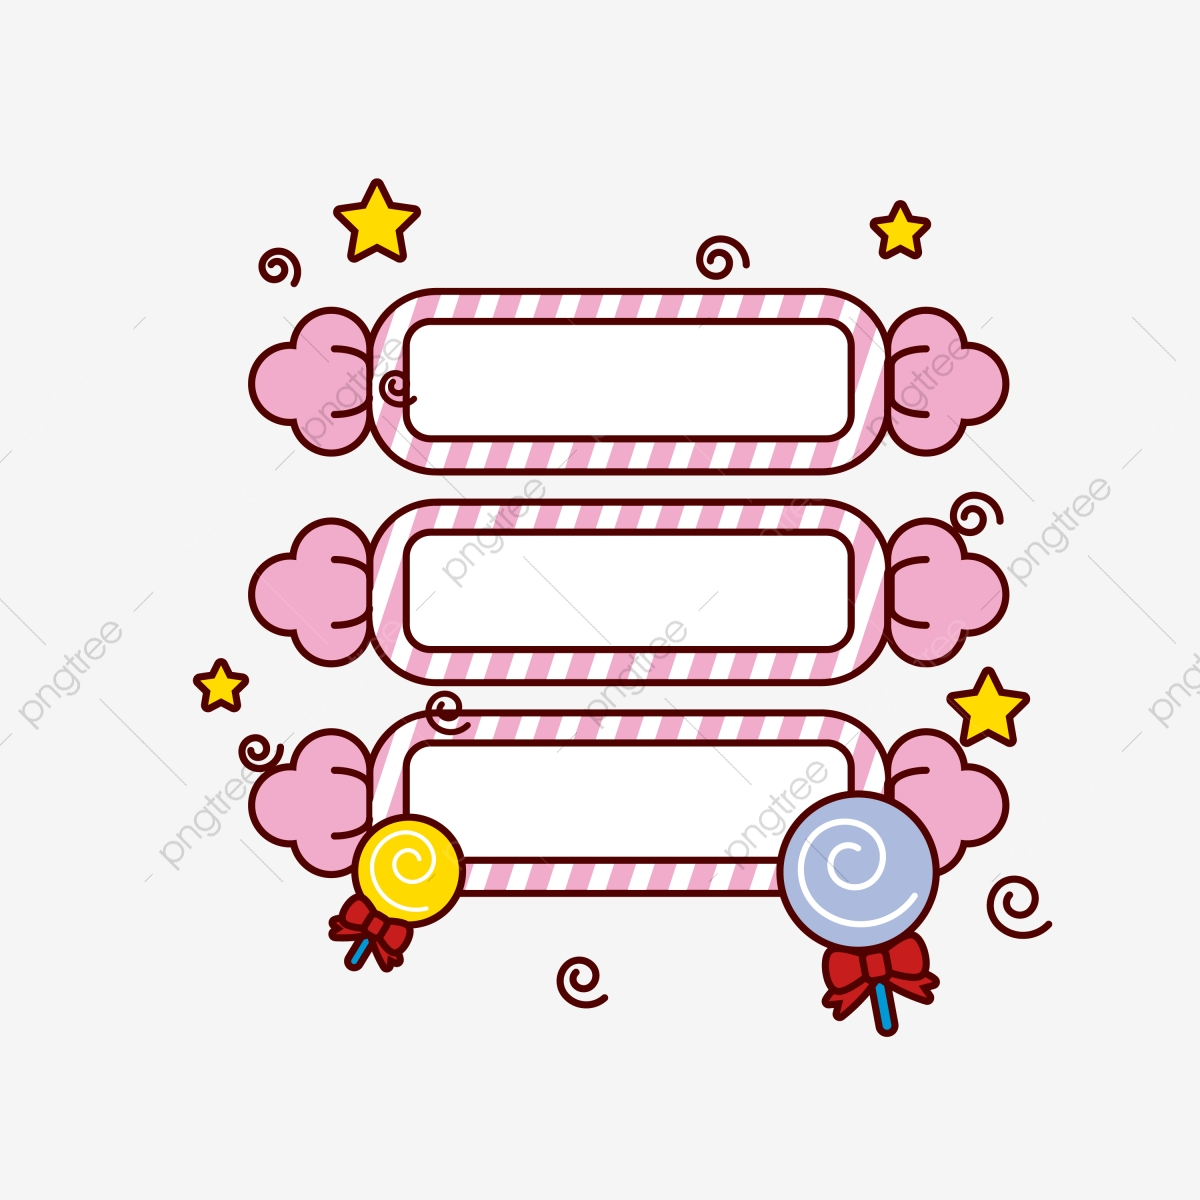 new years day png images vector and psd files free download on pngtree https pngtree com freepng cute border new years pink new years day border 3900845 html